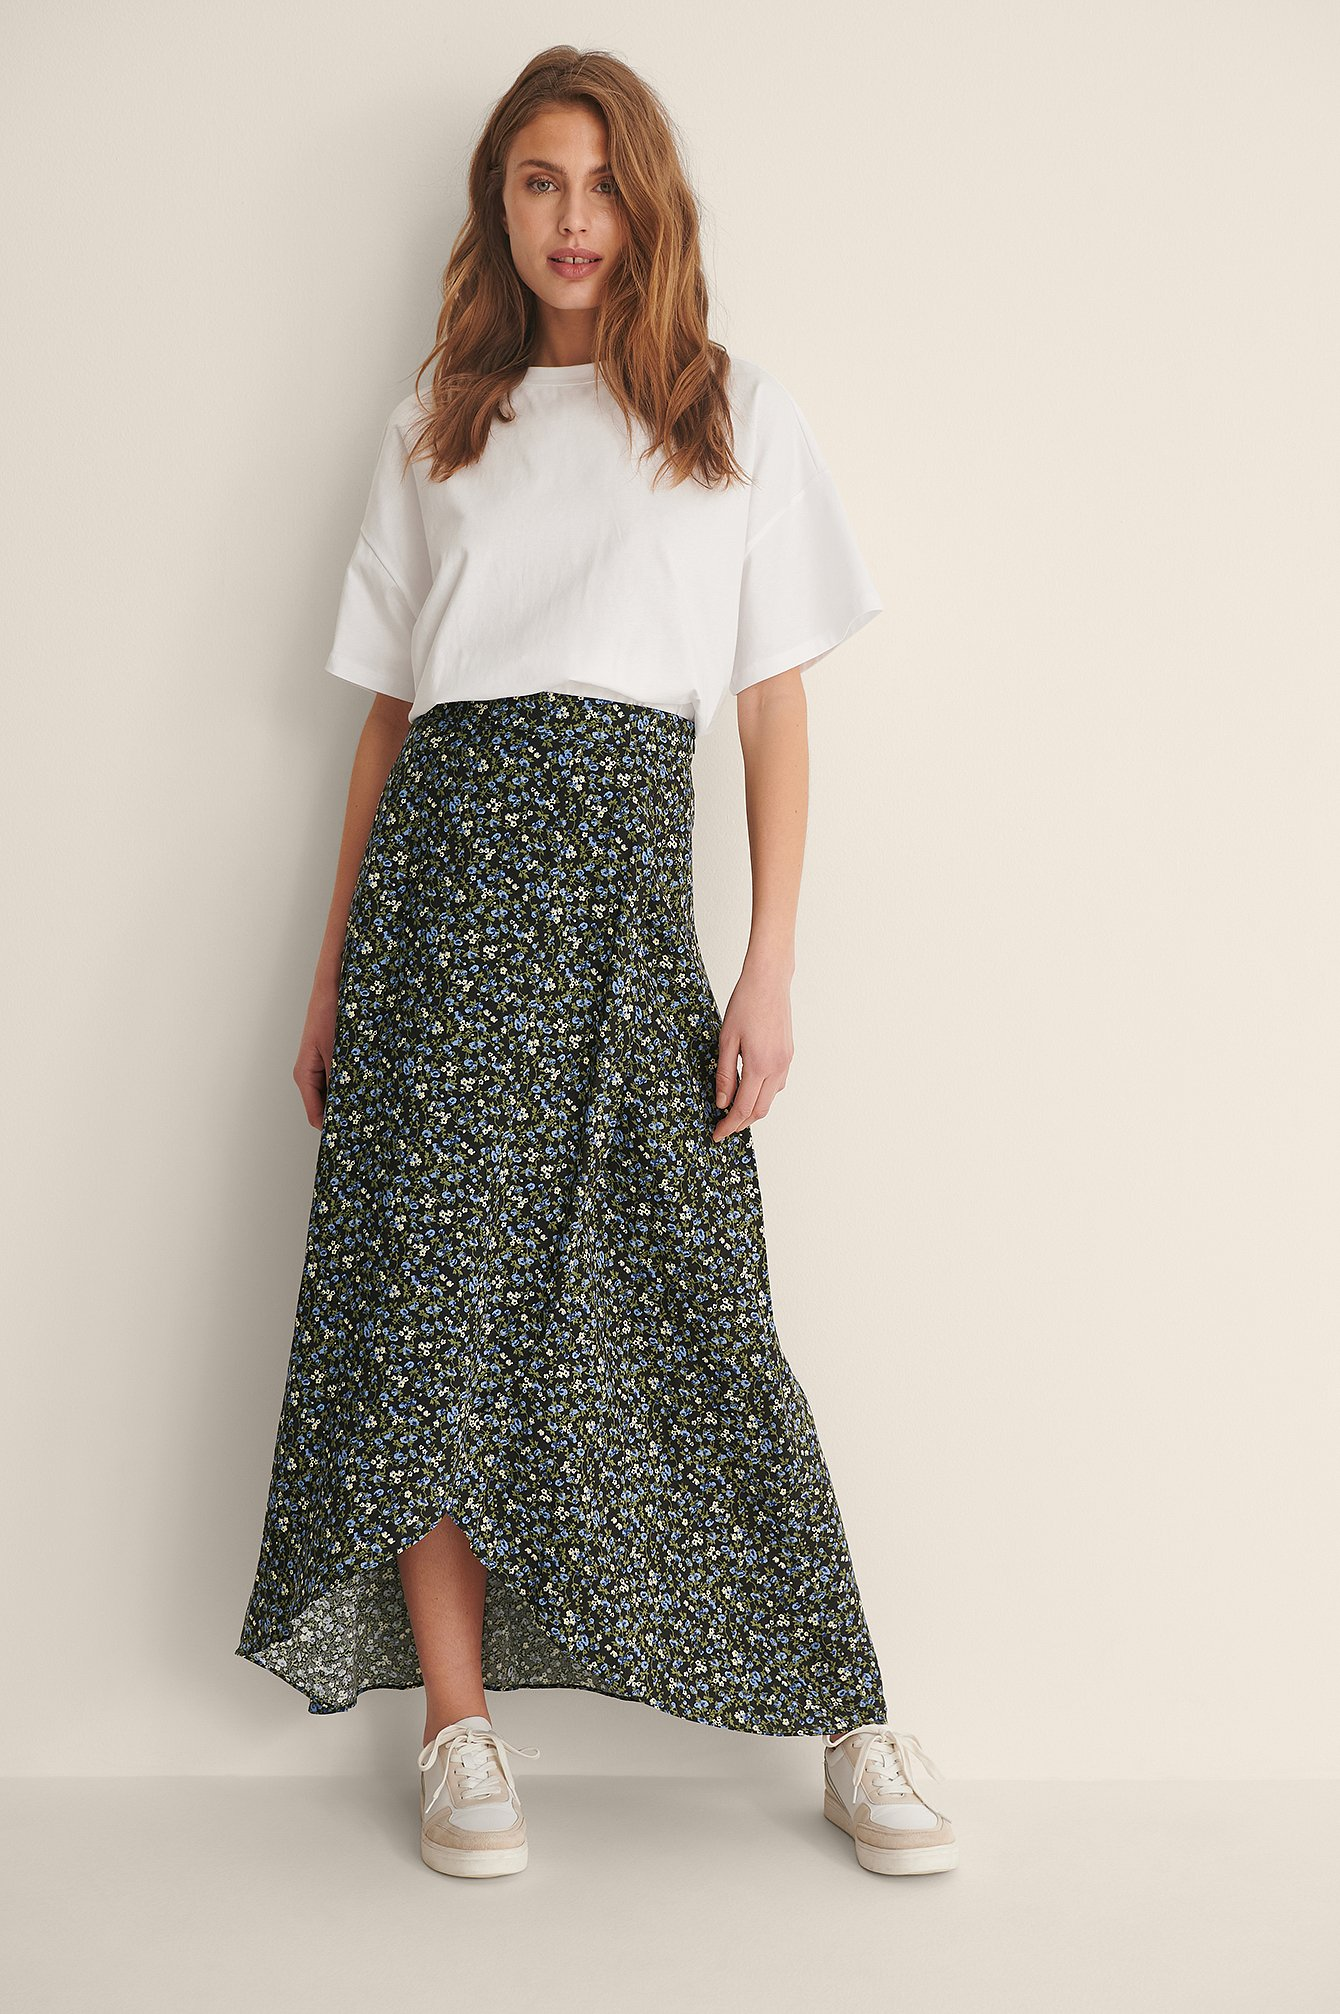 Overlap Printed Maxi Skirt Outfit.